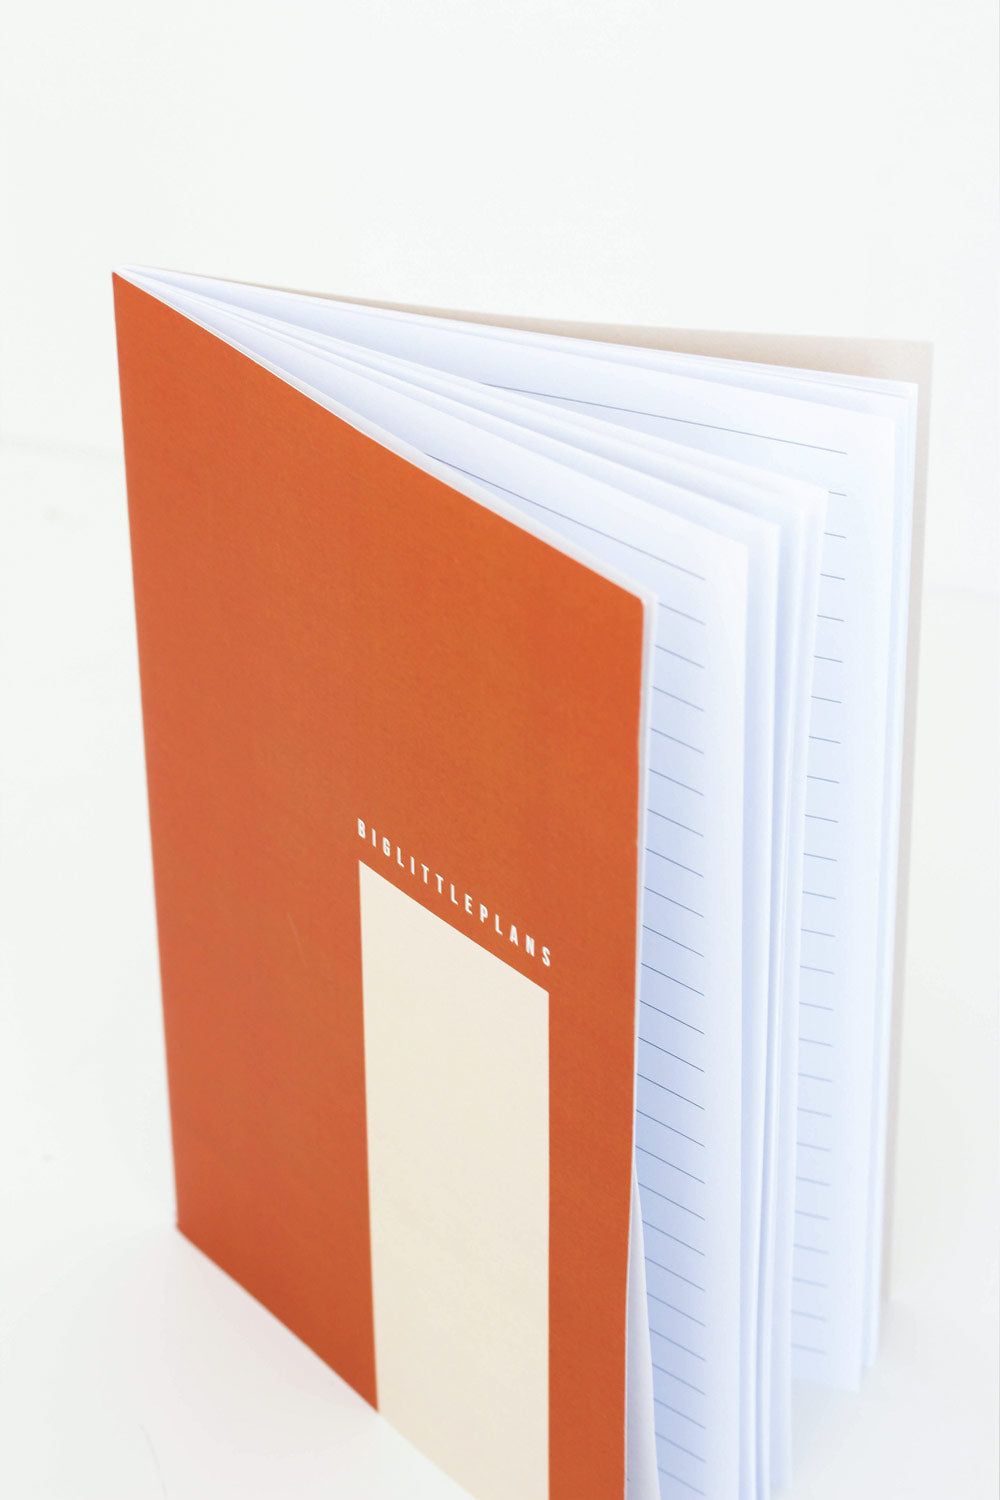 'SECOND' A5 Big Little Plans Softcover Notebook